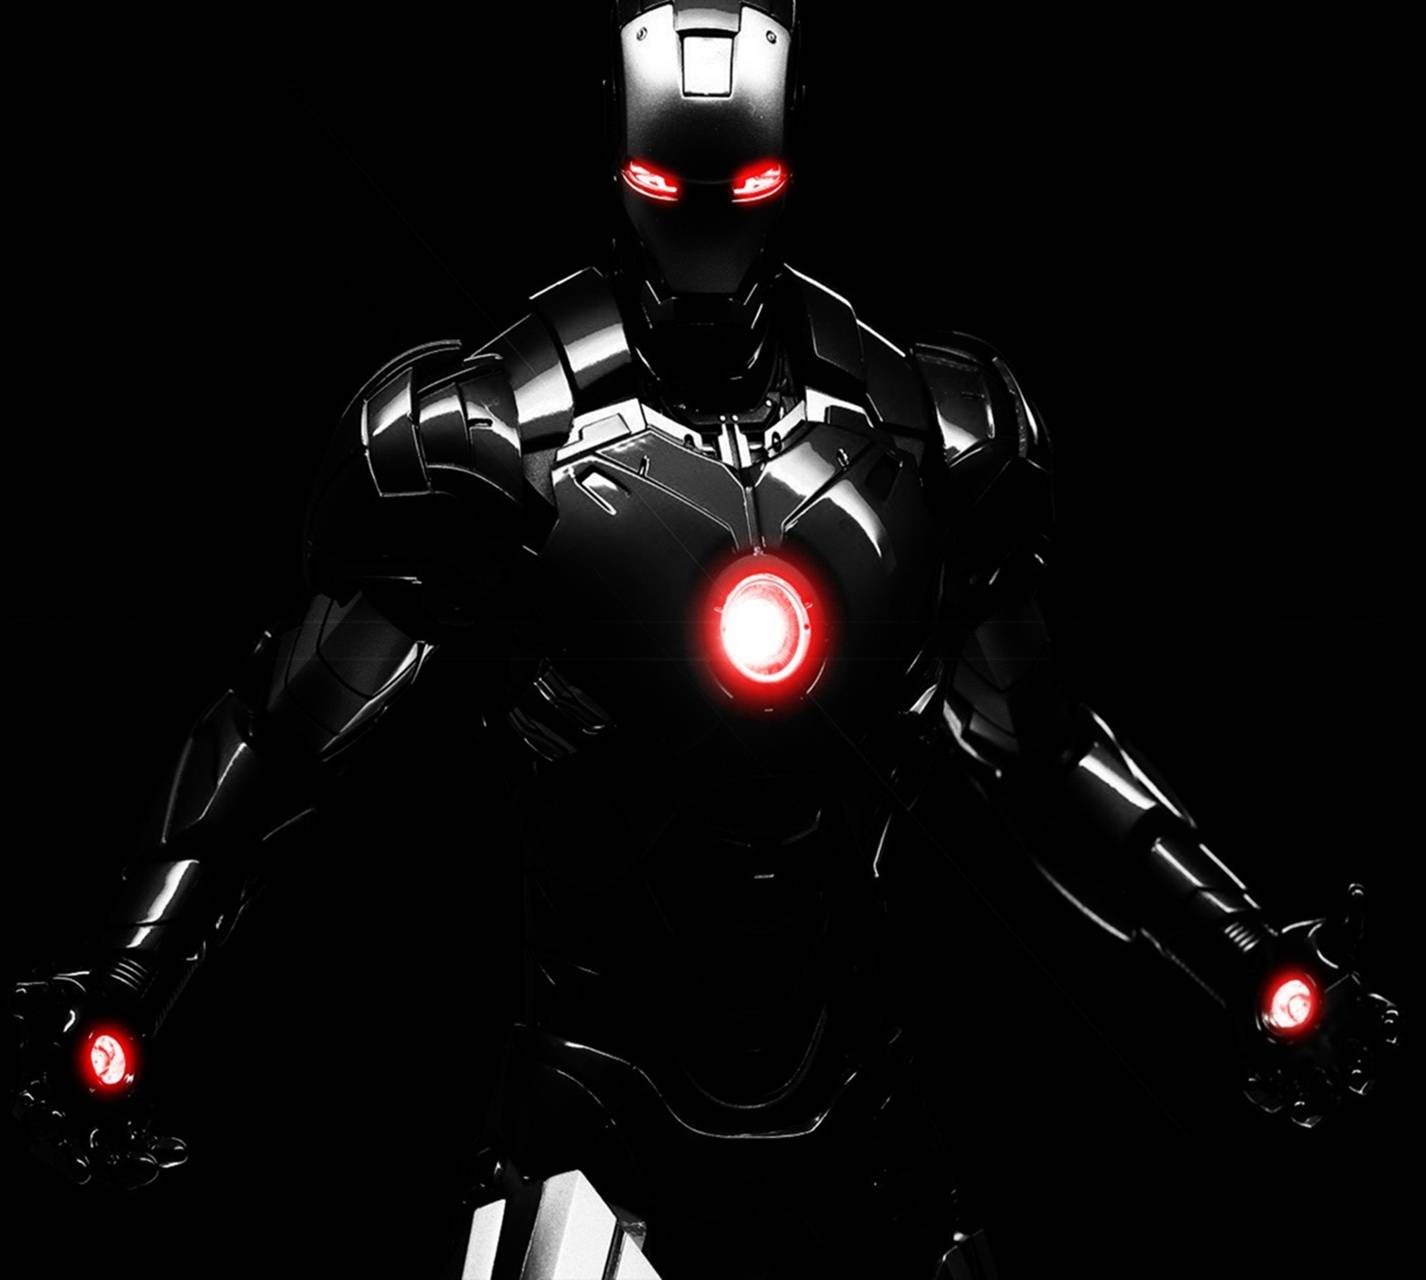 Iron Man Hd Wallpaper By Mr_LazY_